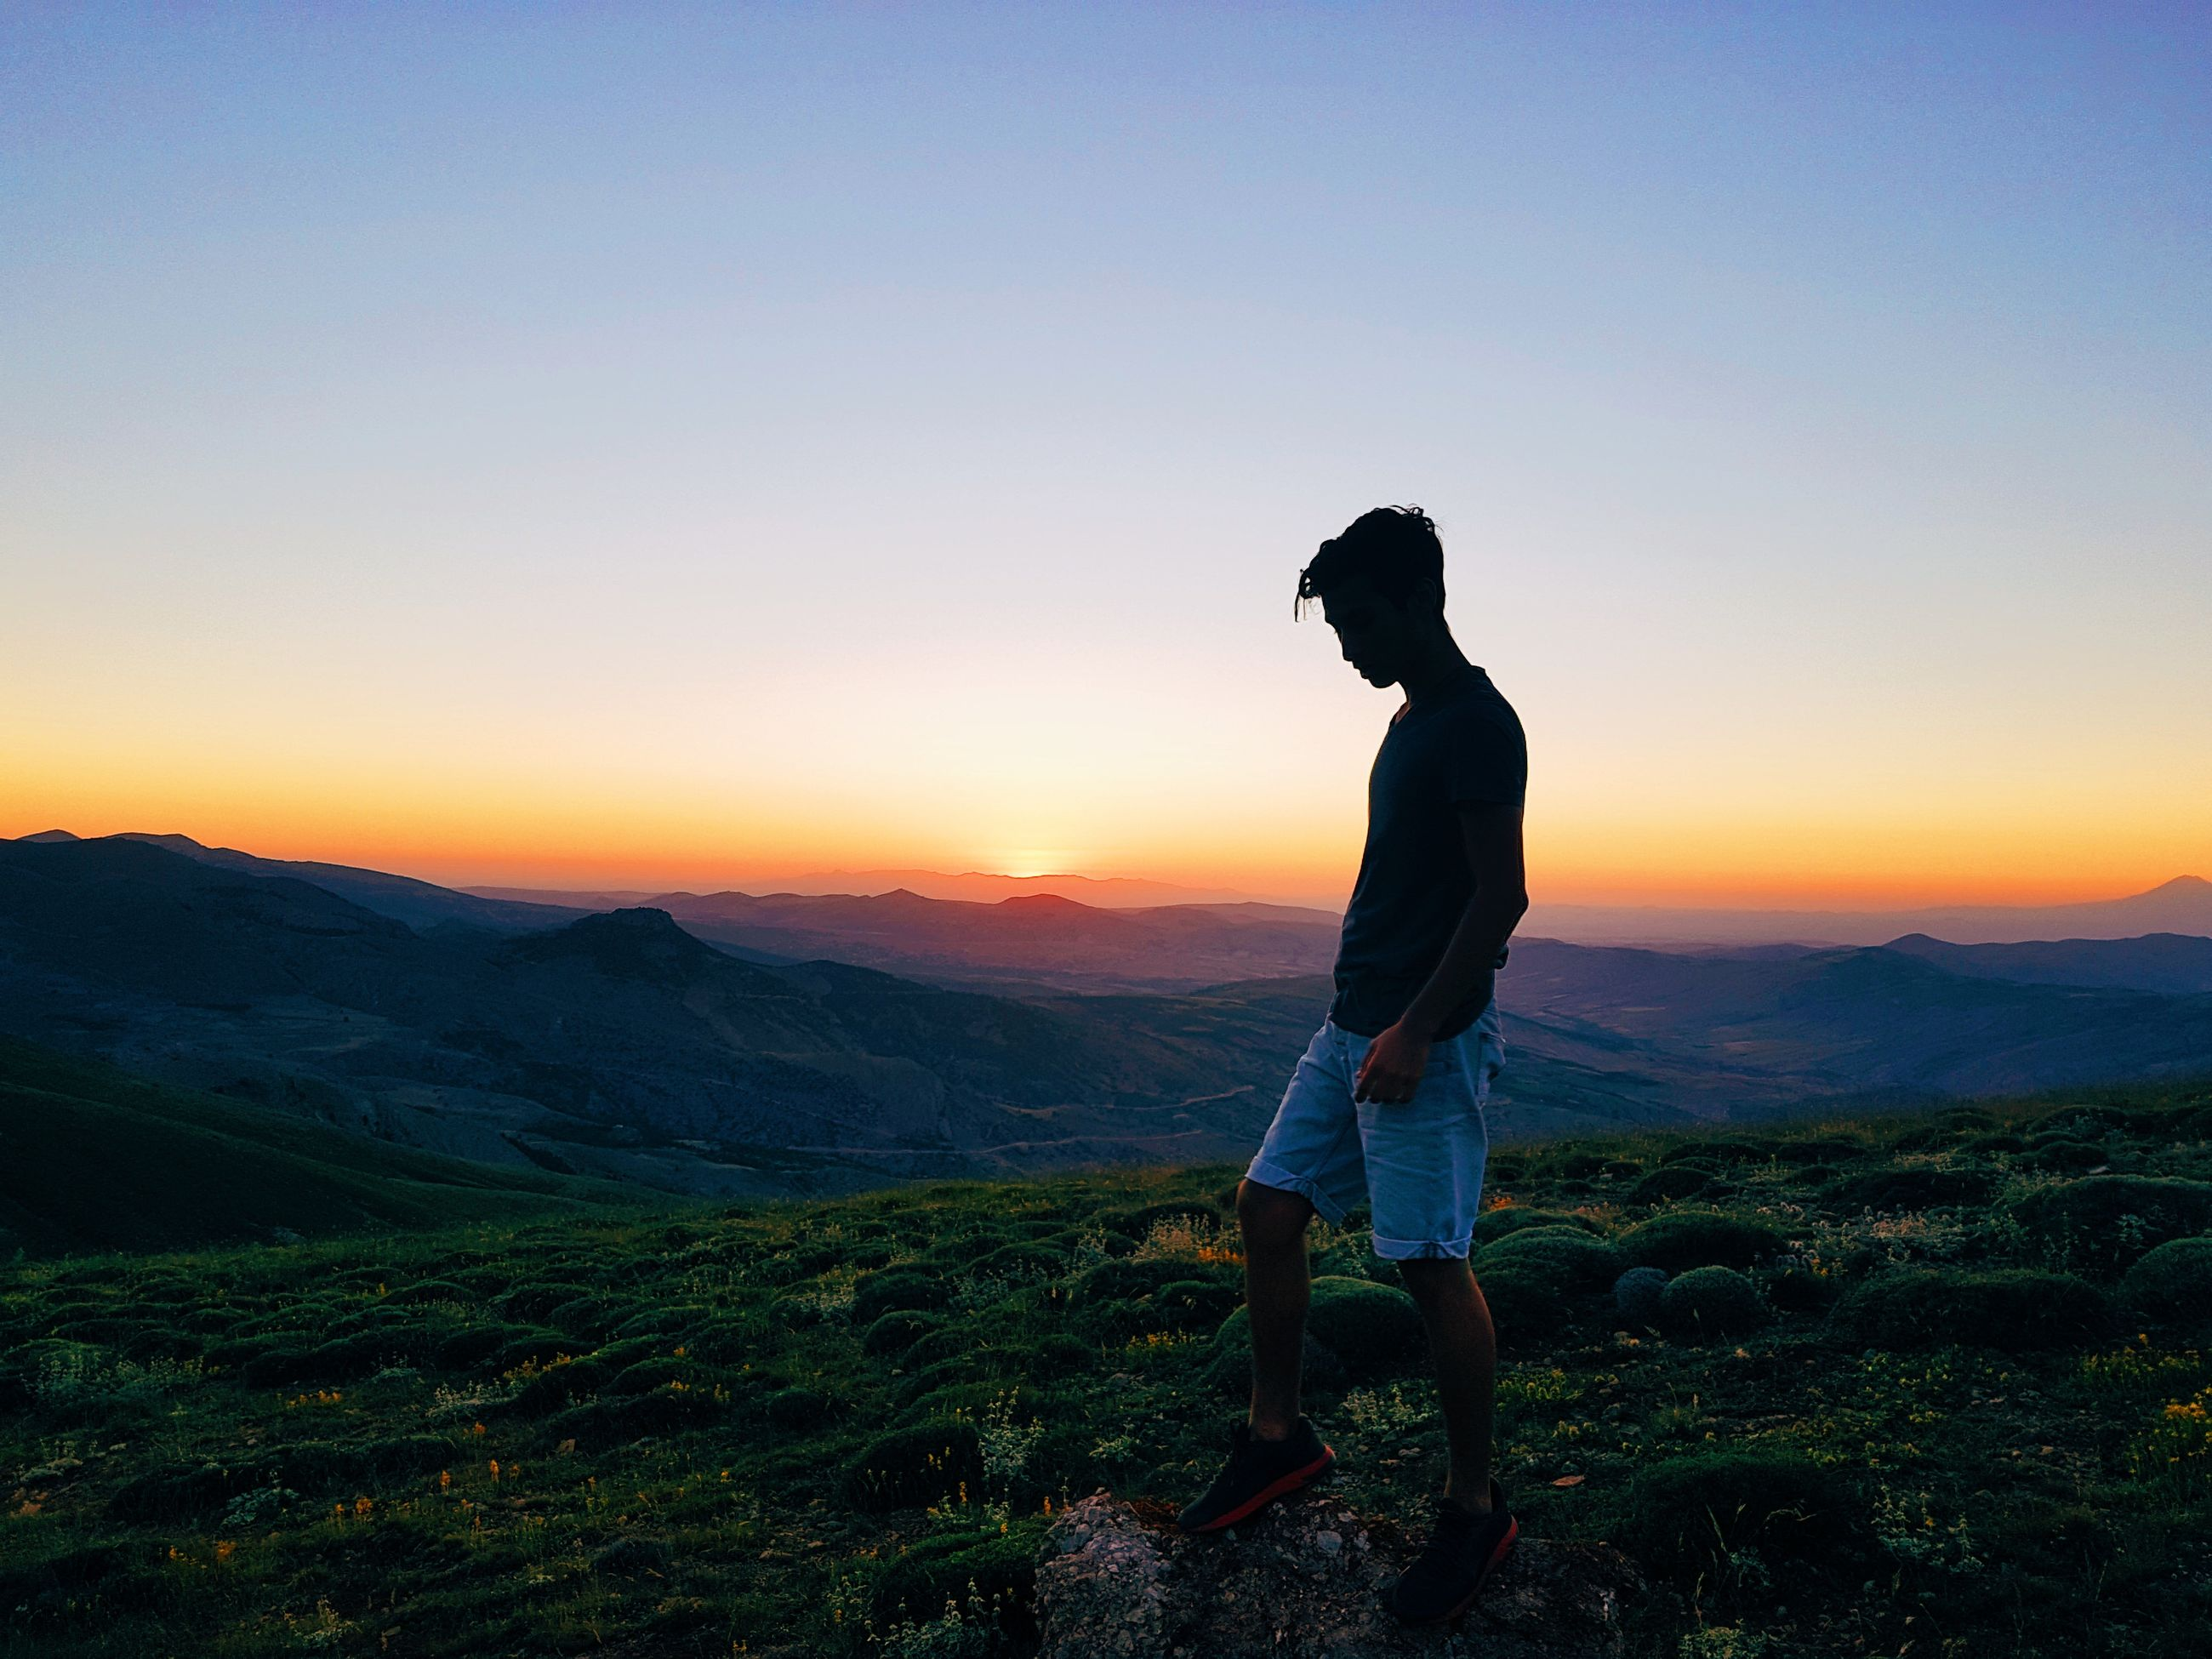 real people, sunset, leisure activity, lifestyles, nature, one person, standing, beauty in nature, casual clothing, scenics, full length, mountain, sky, outdoors, women, landscape, young adult, clear sky, young women, day, people